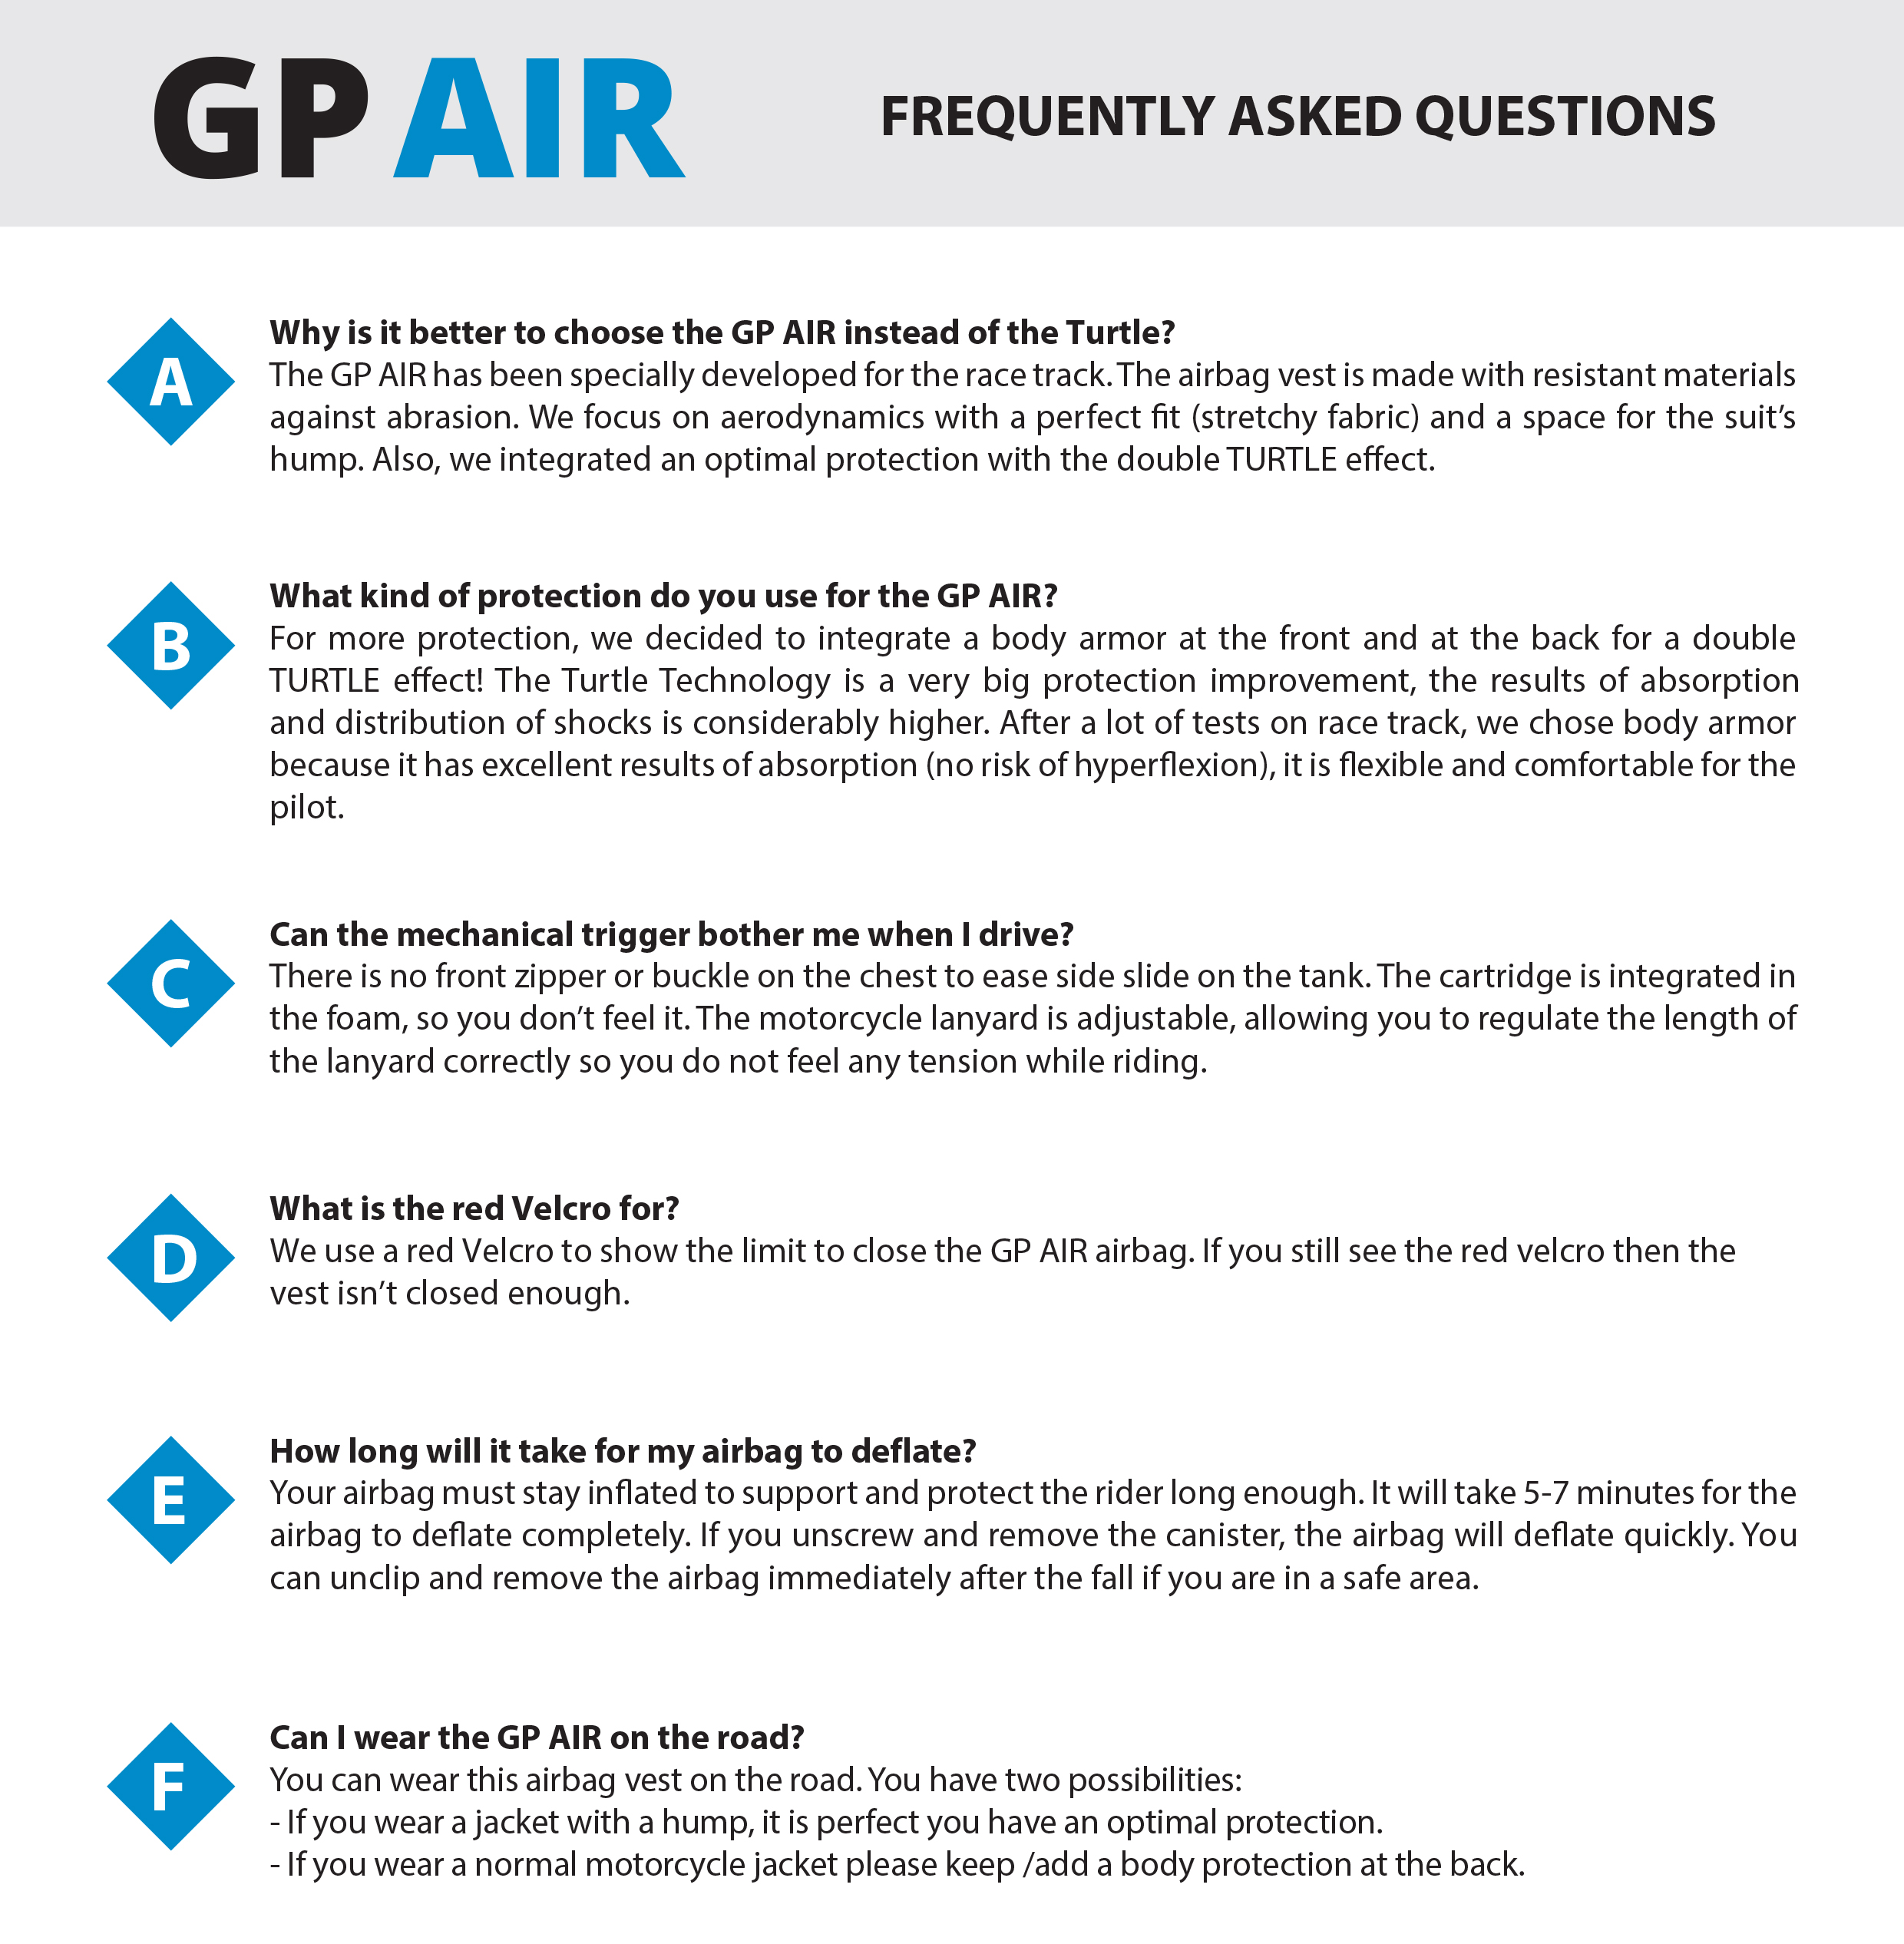 newsletter-gp-air-2018-en-faq.jpg